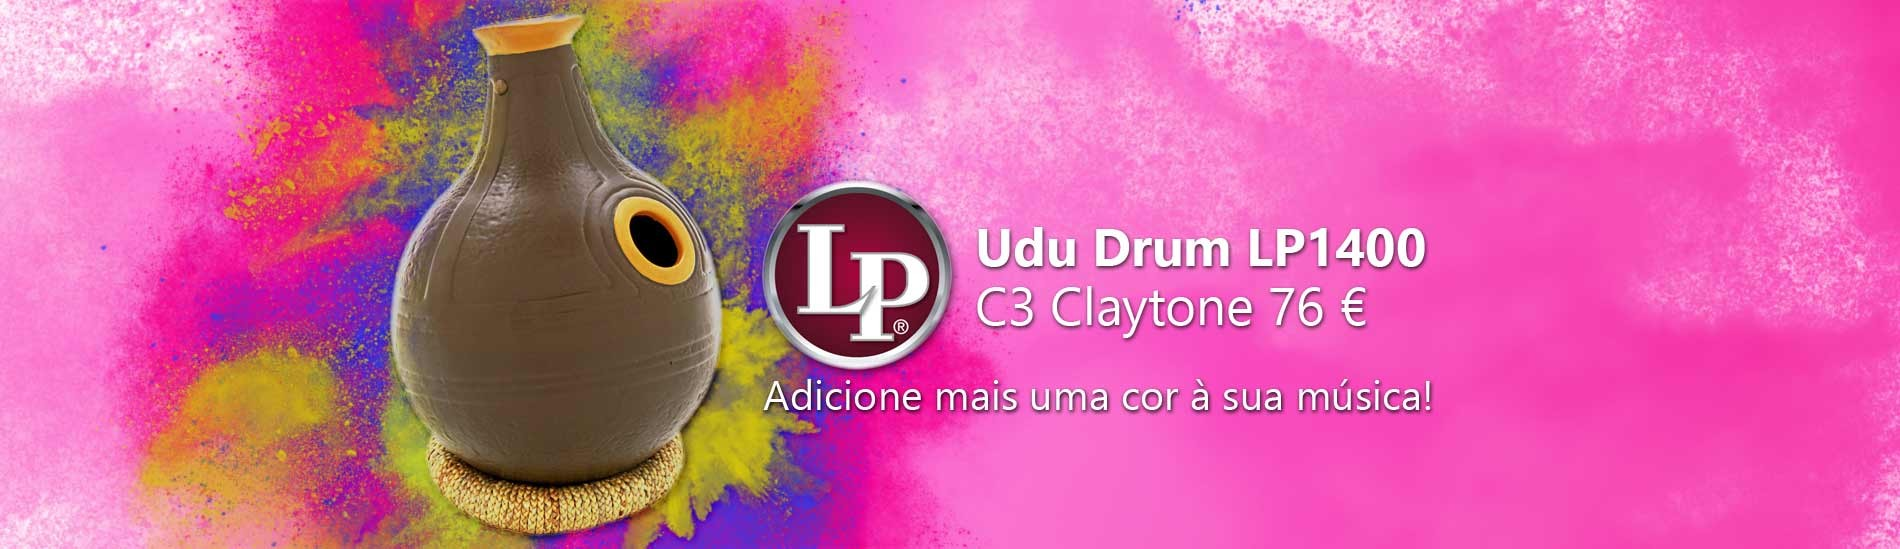 udu-lp1400-c3-portugues